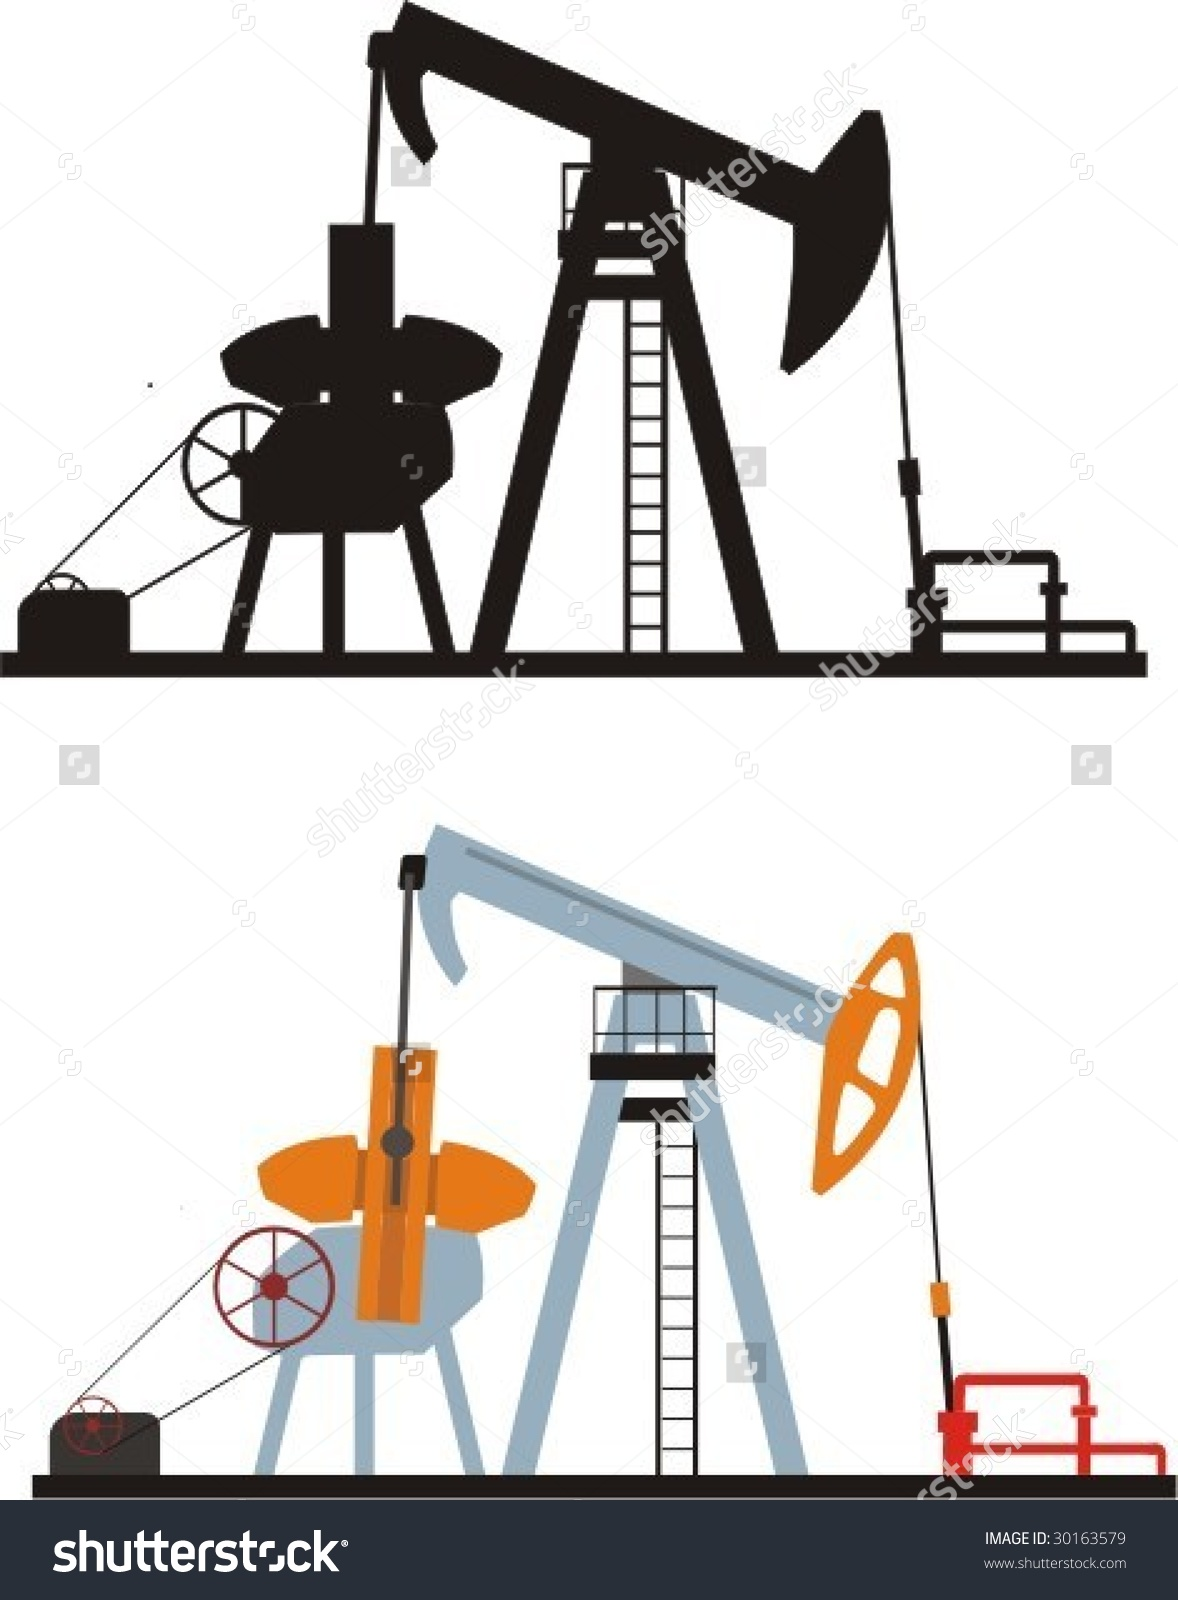 Pumping Station For Mining The Oils Stock Vector Illustration.